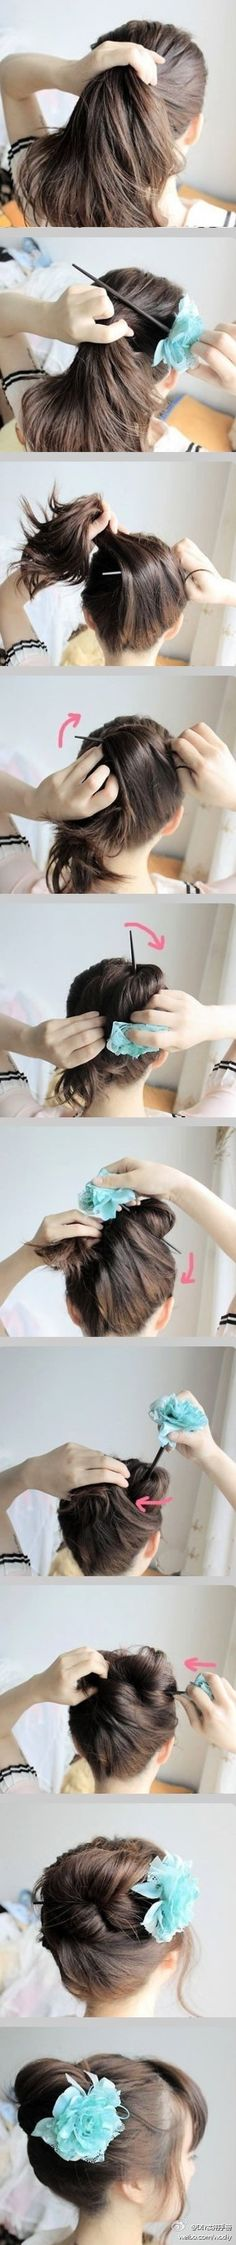 diy updo hair style, I always do this with a pencil.I just need to glue a flower to it lol! Bun Hairstyles, Pretty Hairstyles, Easy Hairstyle, Wedding Hairstyles, Chopstick Hair, Hair Sticks, Tips Belleza, Hair Dos, Gorgeous Hair